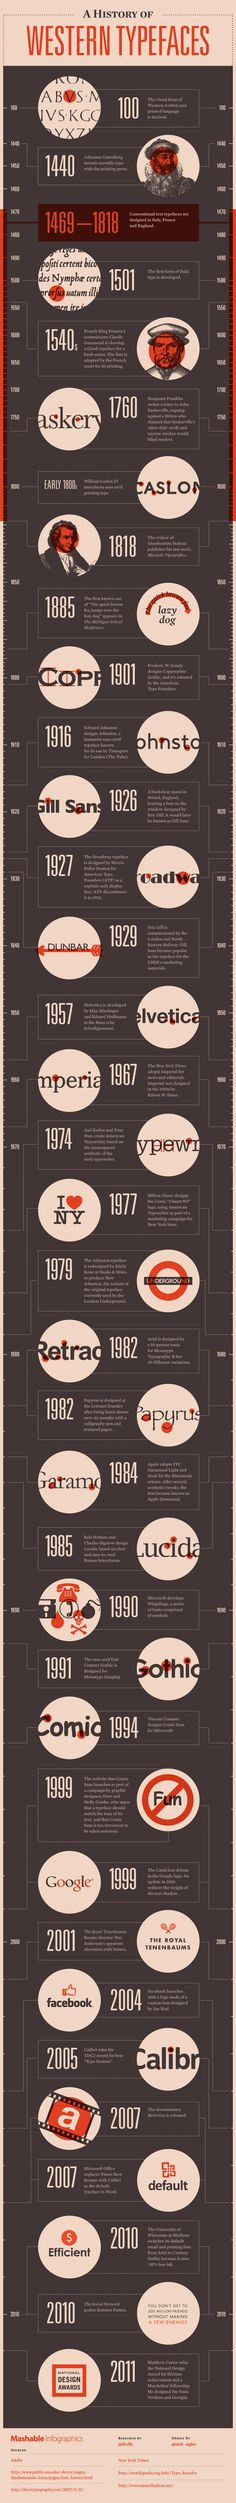 A History of Western Typefaces | Infographic